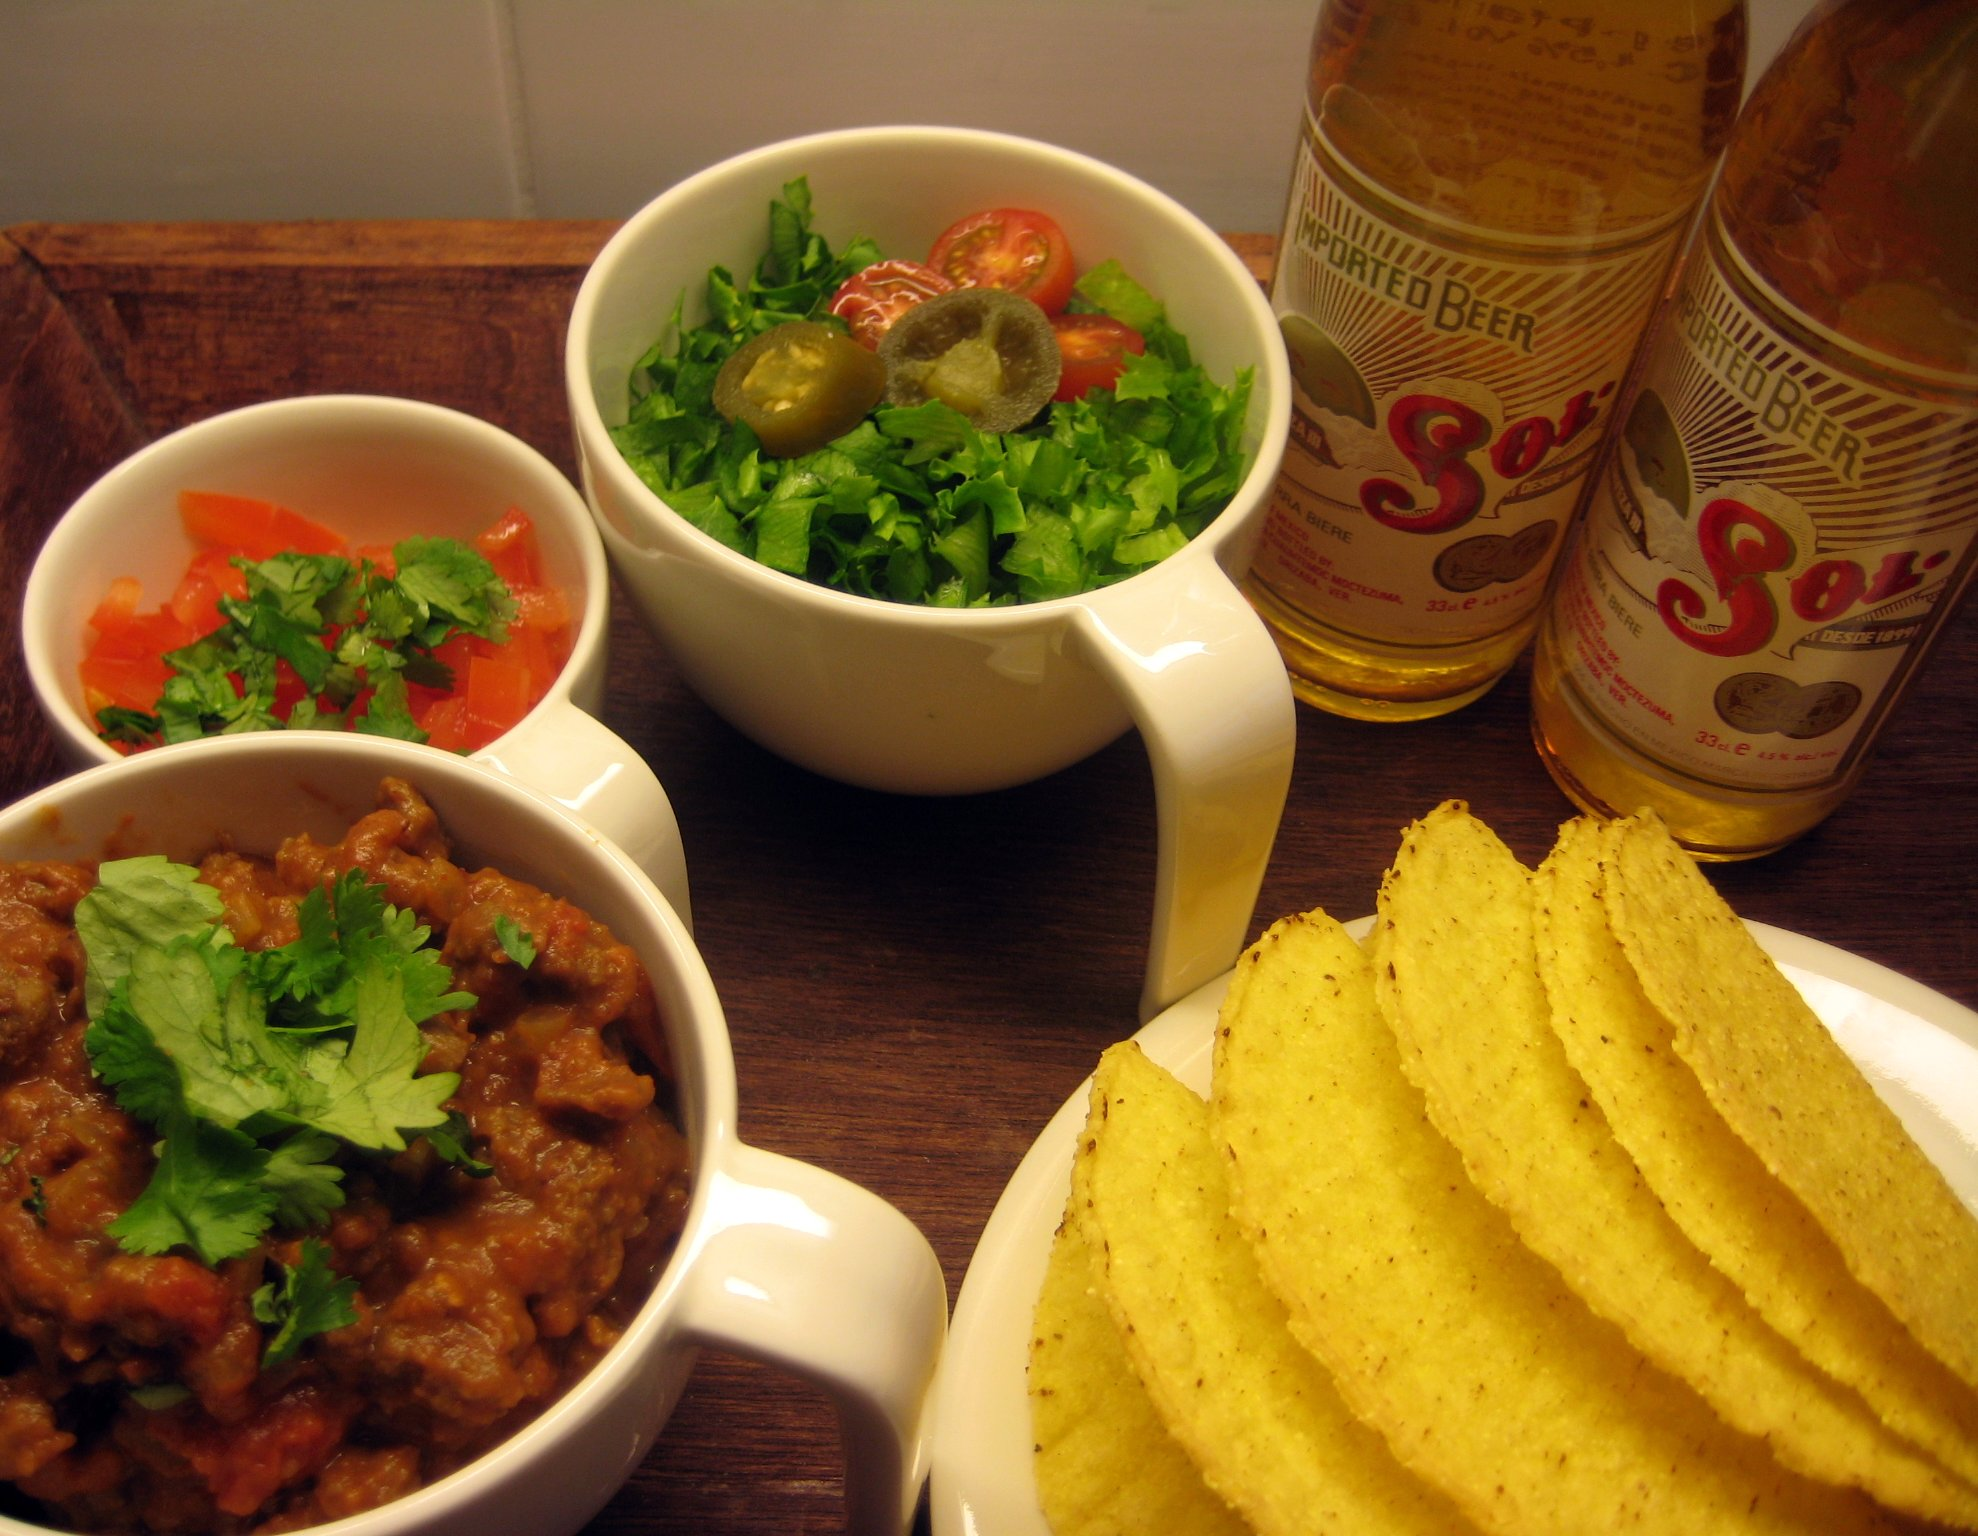 File:Vegan taco dinner for two.jpg - Wikimedia Commons